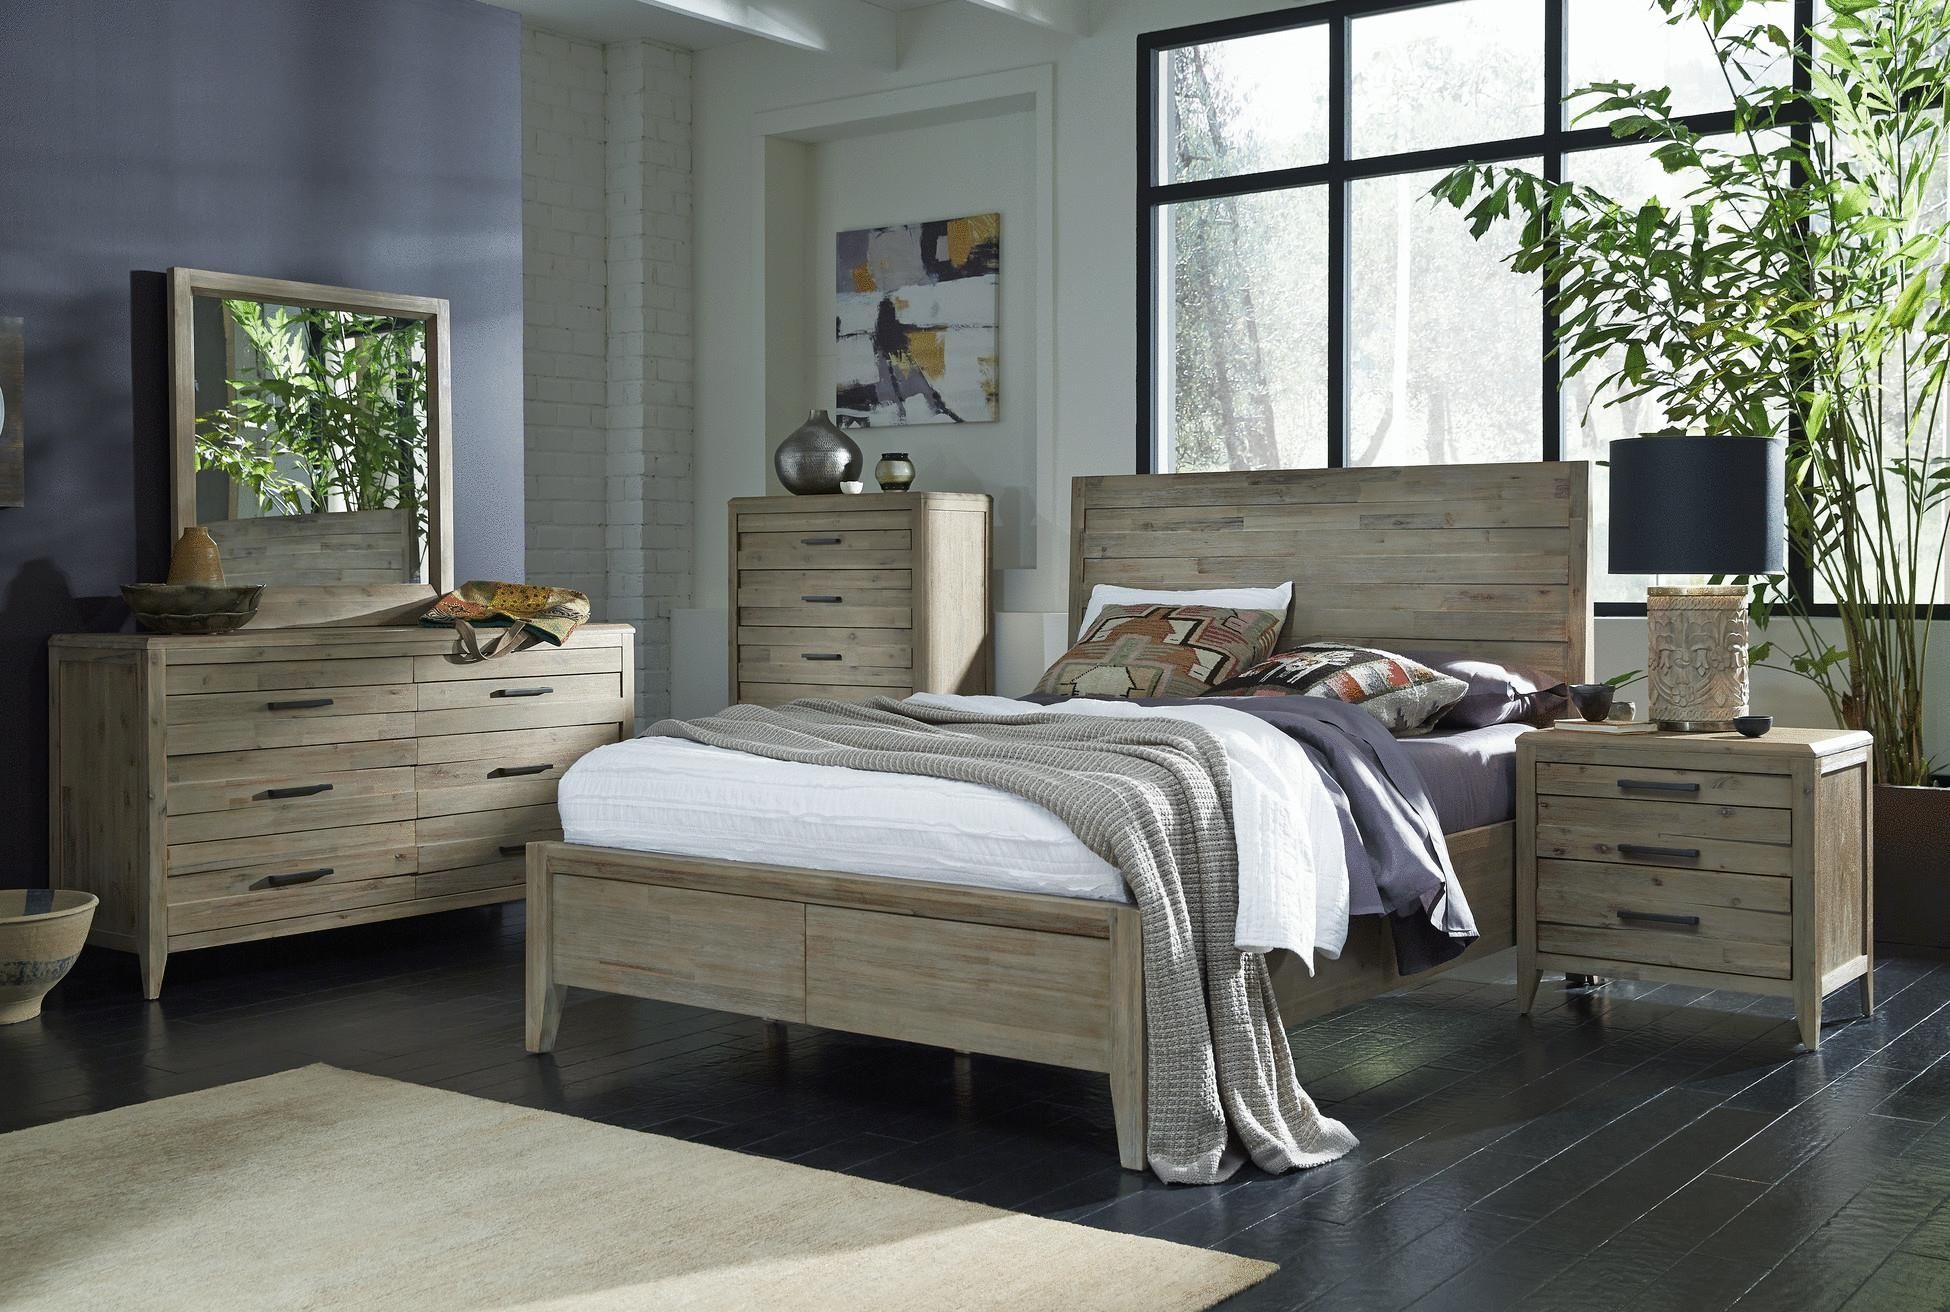 Exceptionnel Casablanca Bedroom Set Sets Pinterest And